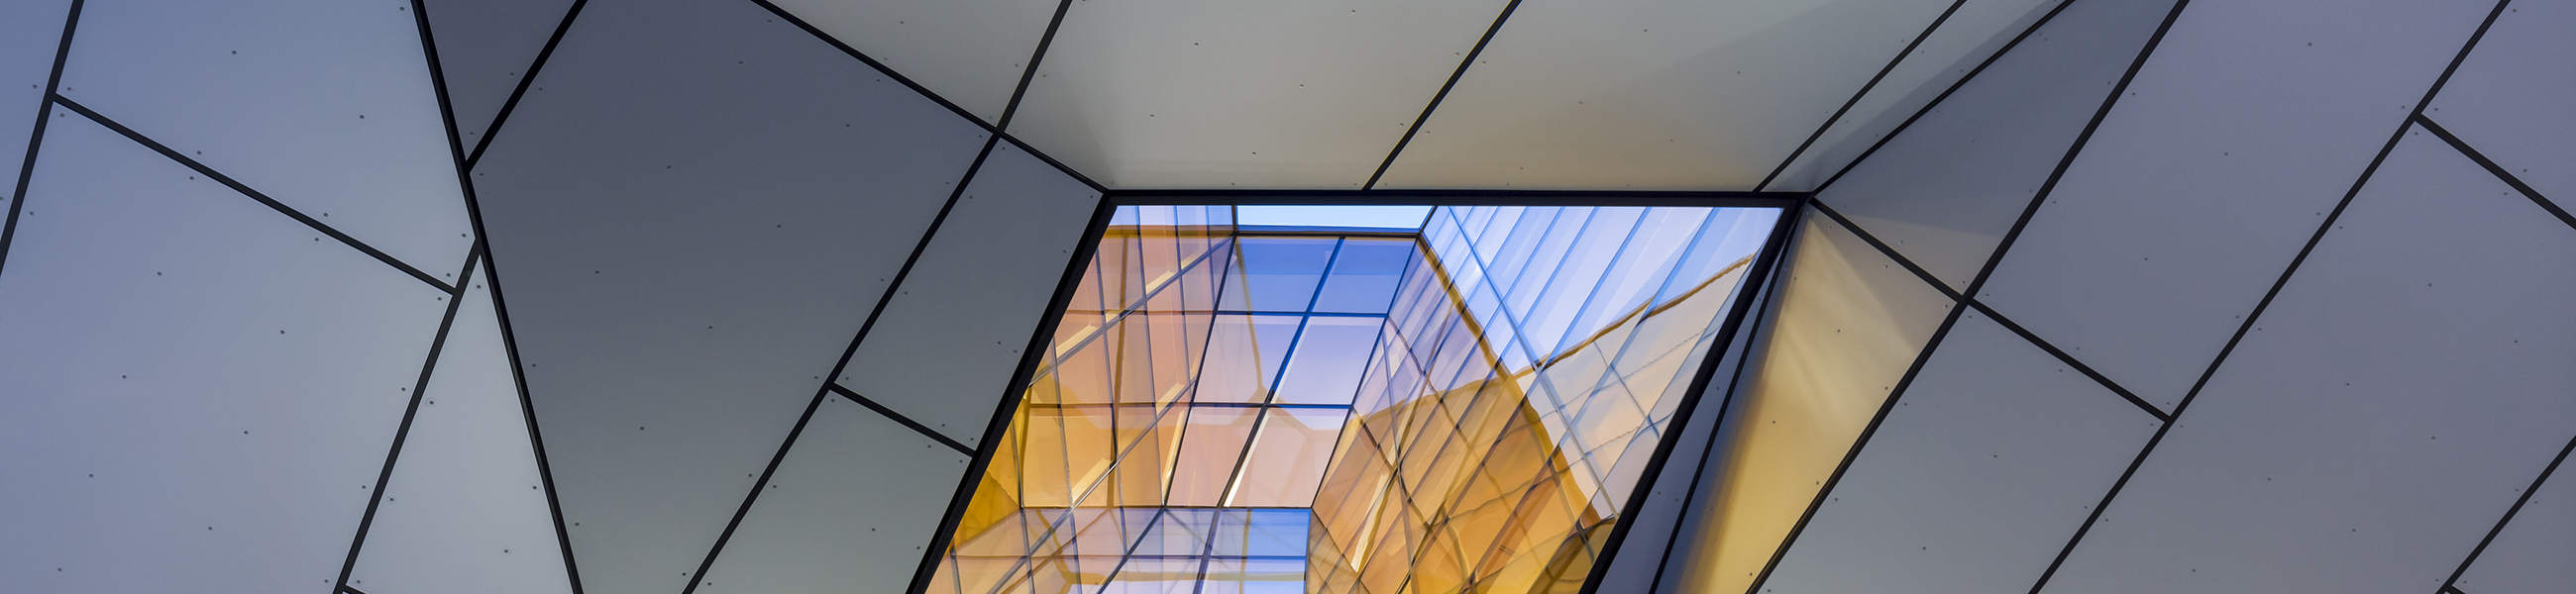 Glass skylight at UBC-Earth-Science building